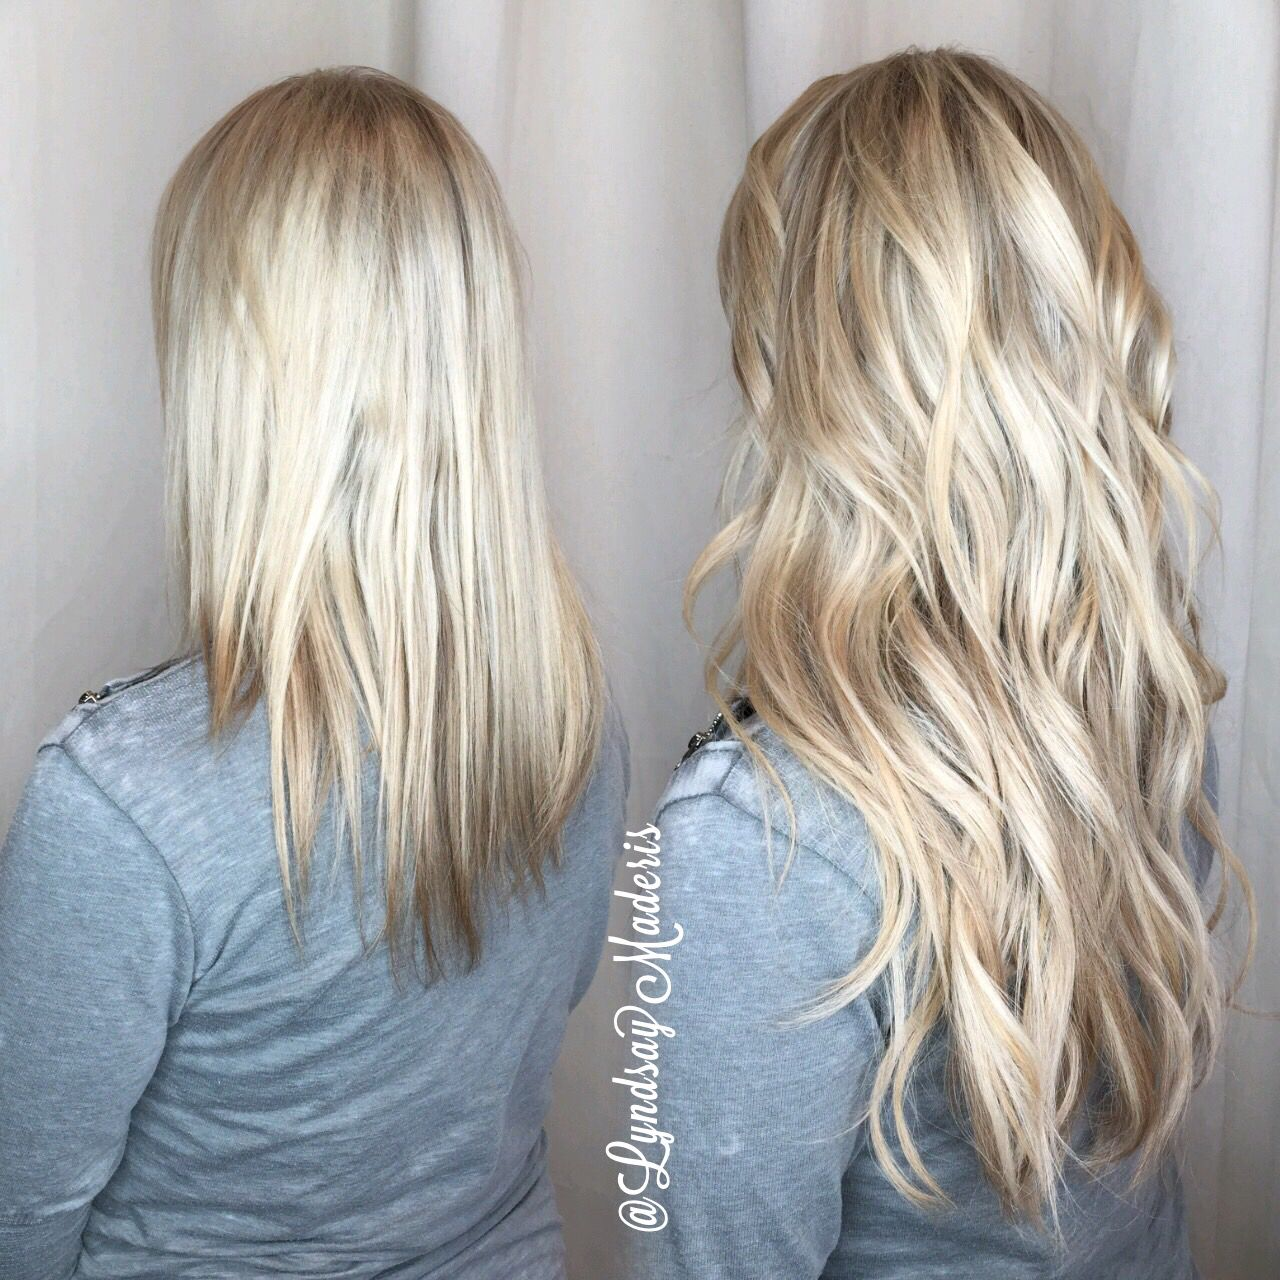 16 Platinum Blonde Hair Extensions Greatlengthsusa Hair